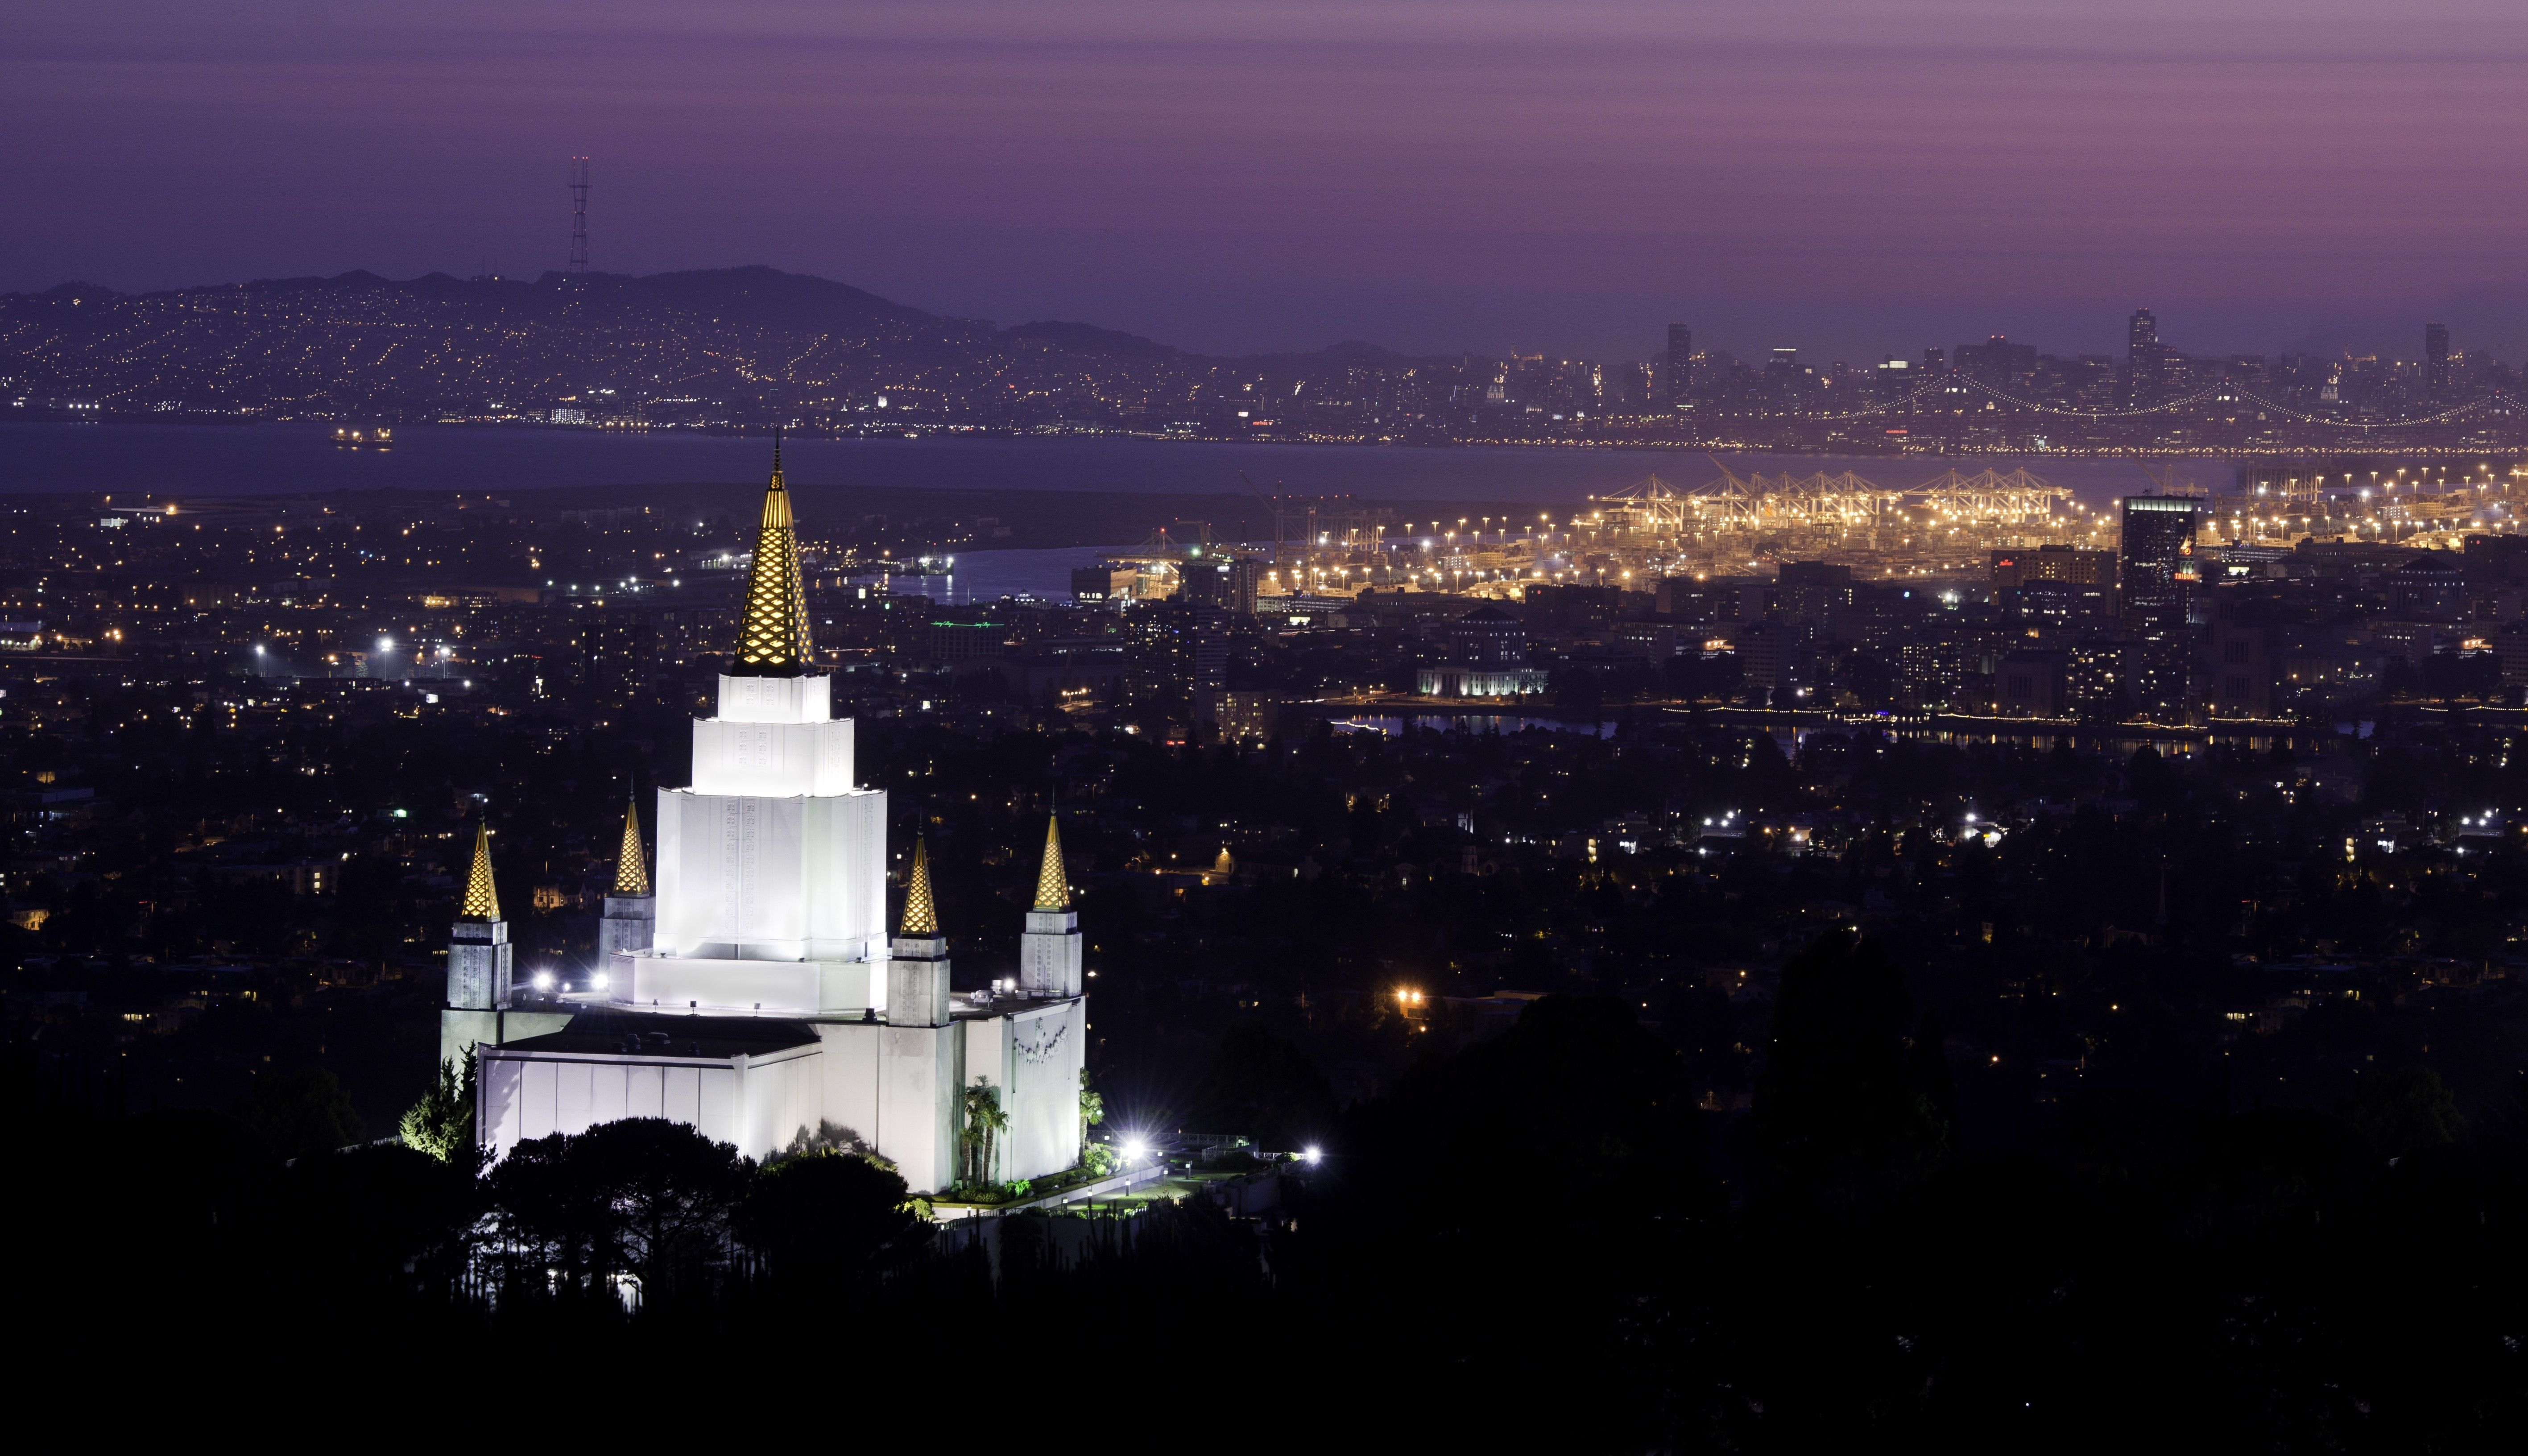 The Oakland California Temple in the evening, including the city.